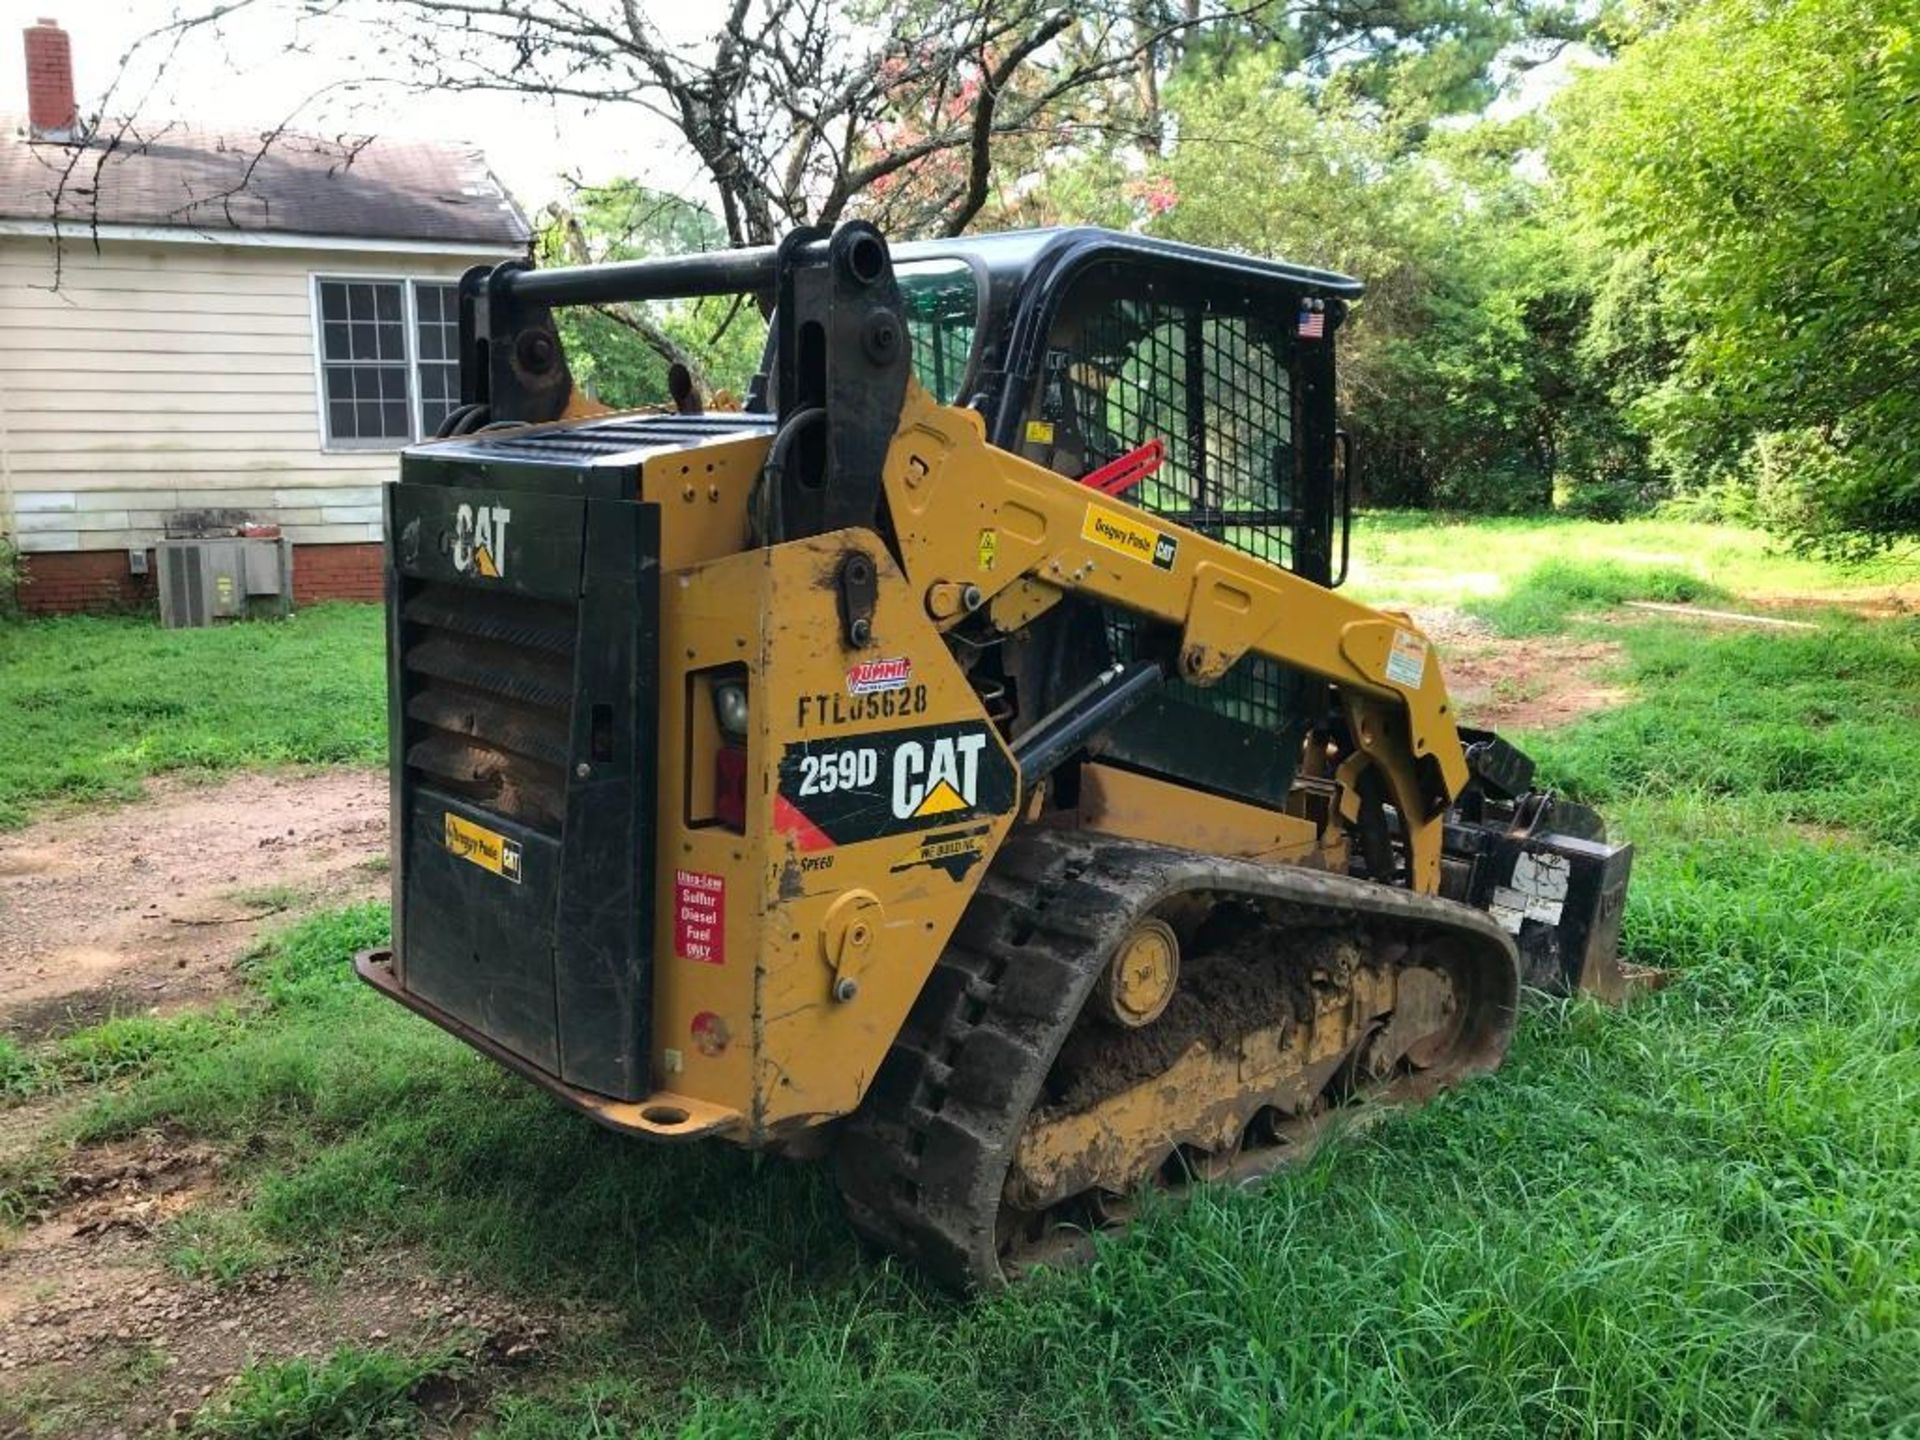 2016 CATERPILLAR 259D TWO SPEED TRACKED SKID STEER LOADER - Image 2 of 4